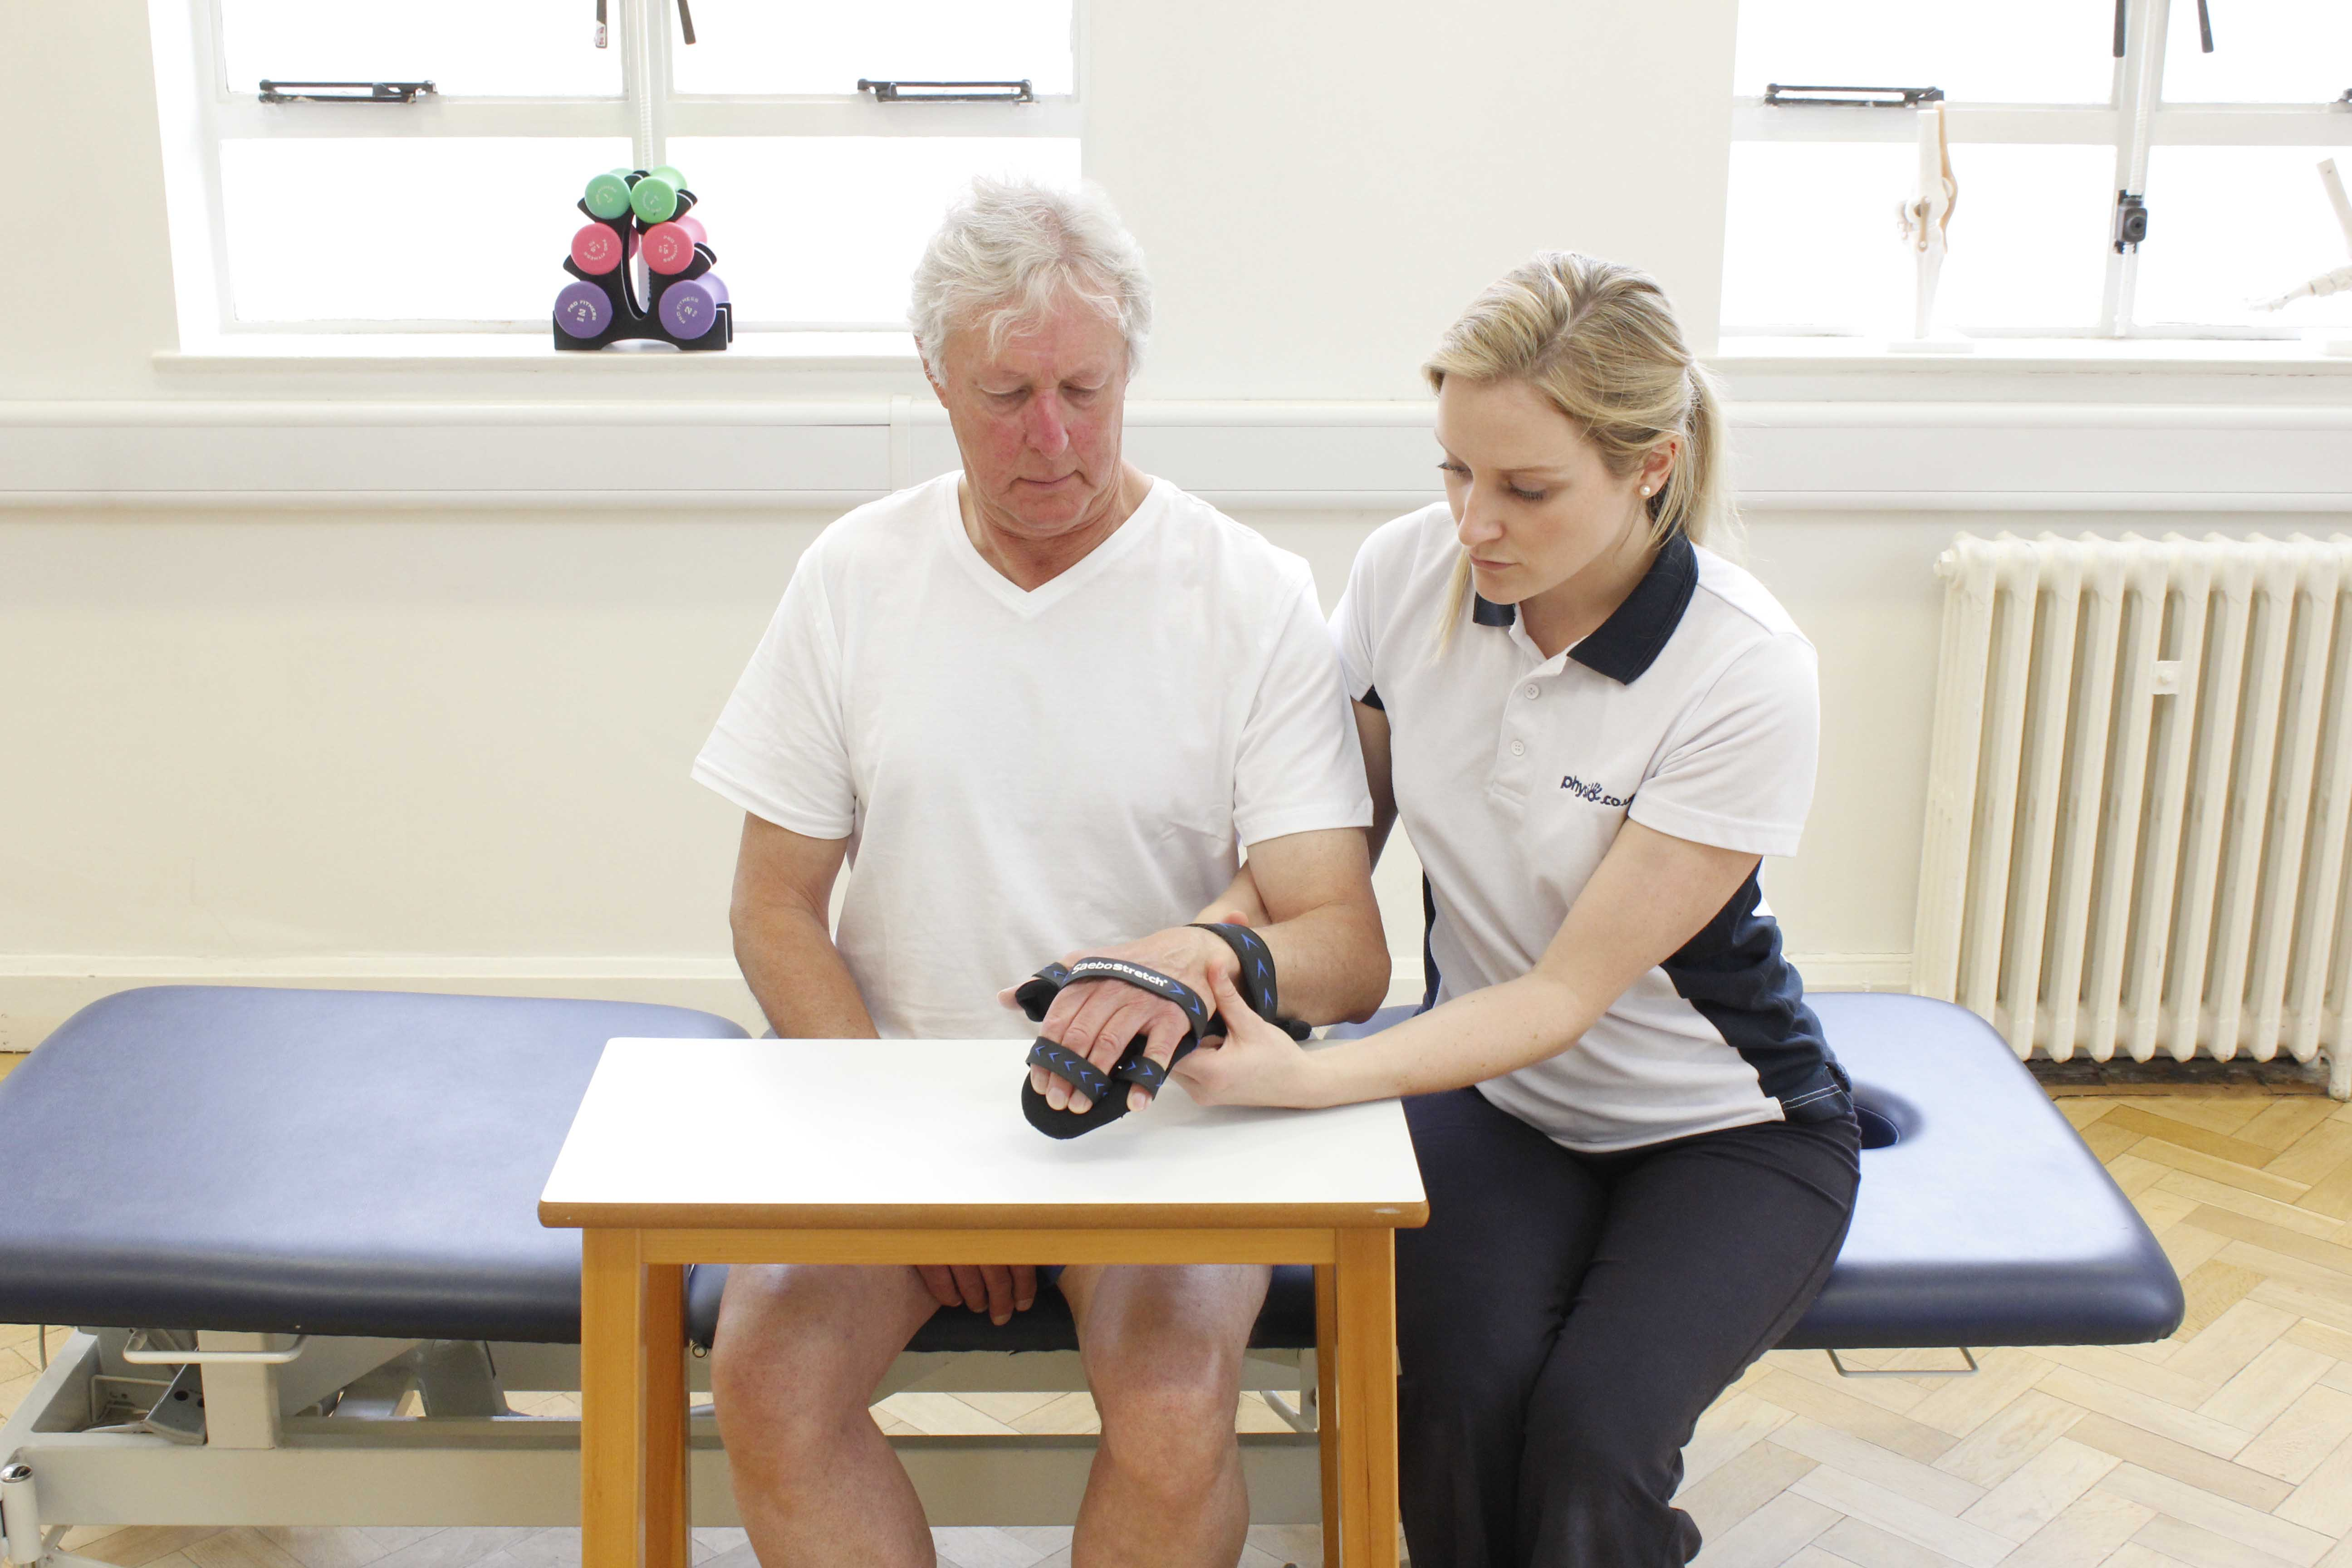 Use of stretches maintained with splints can help reduce painful symptoms